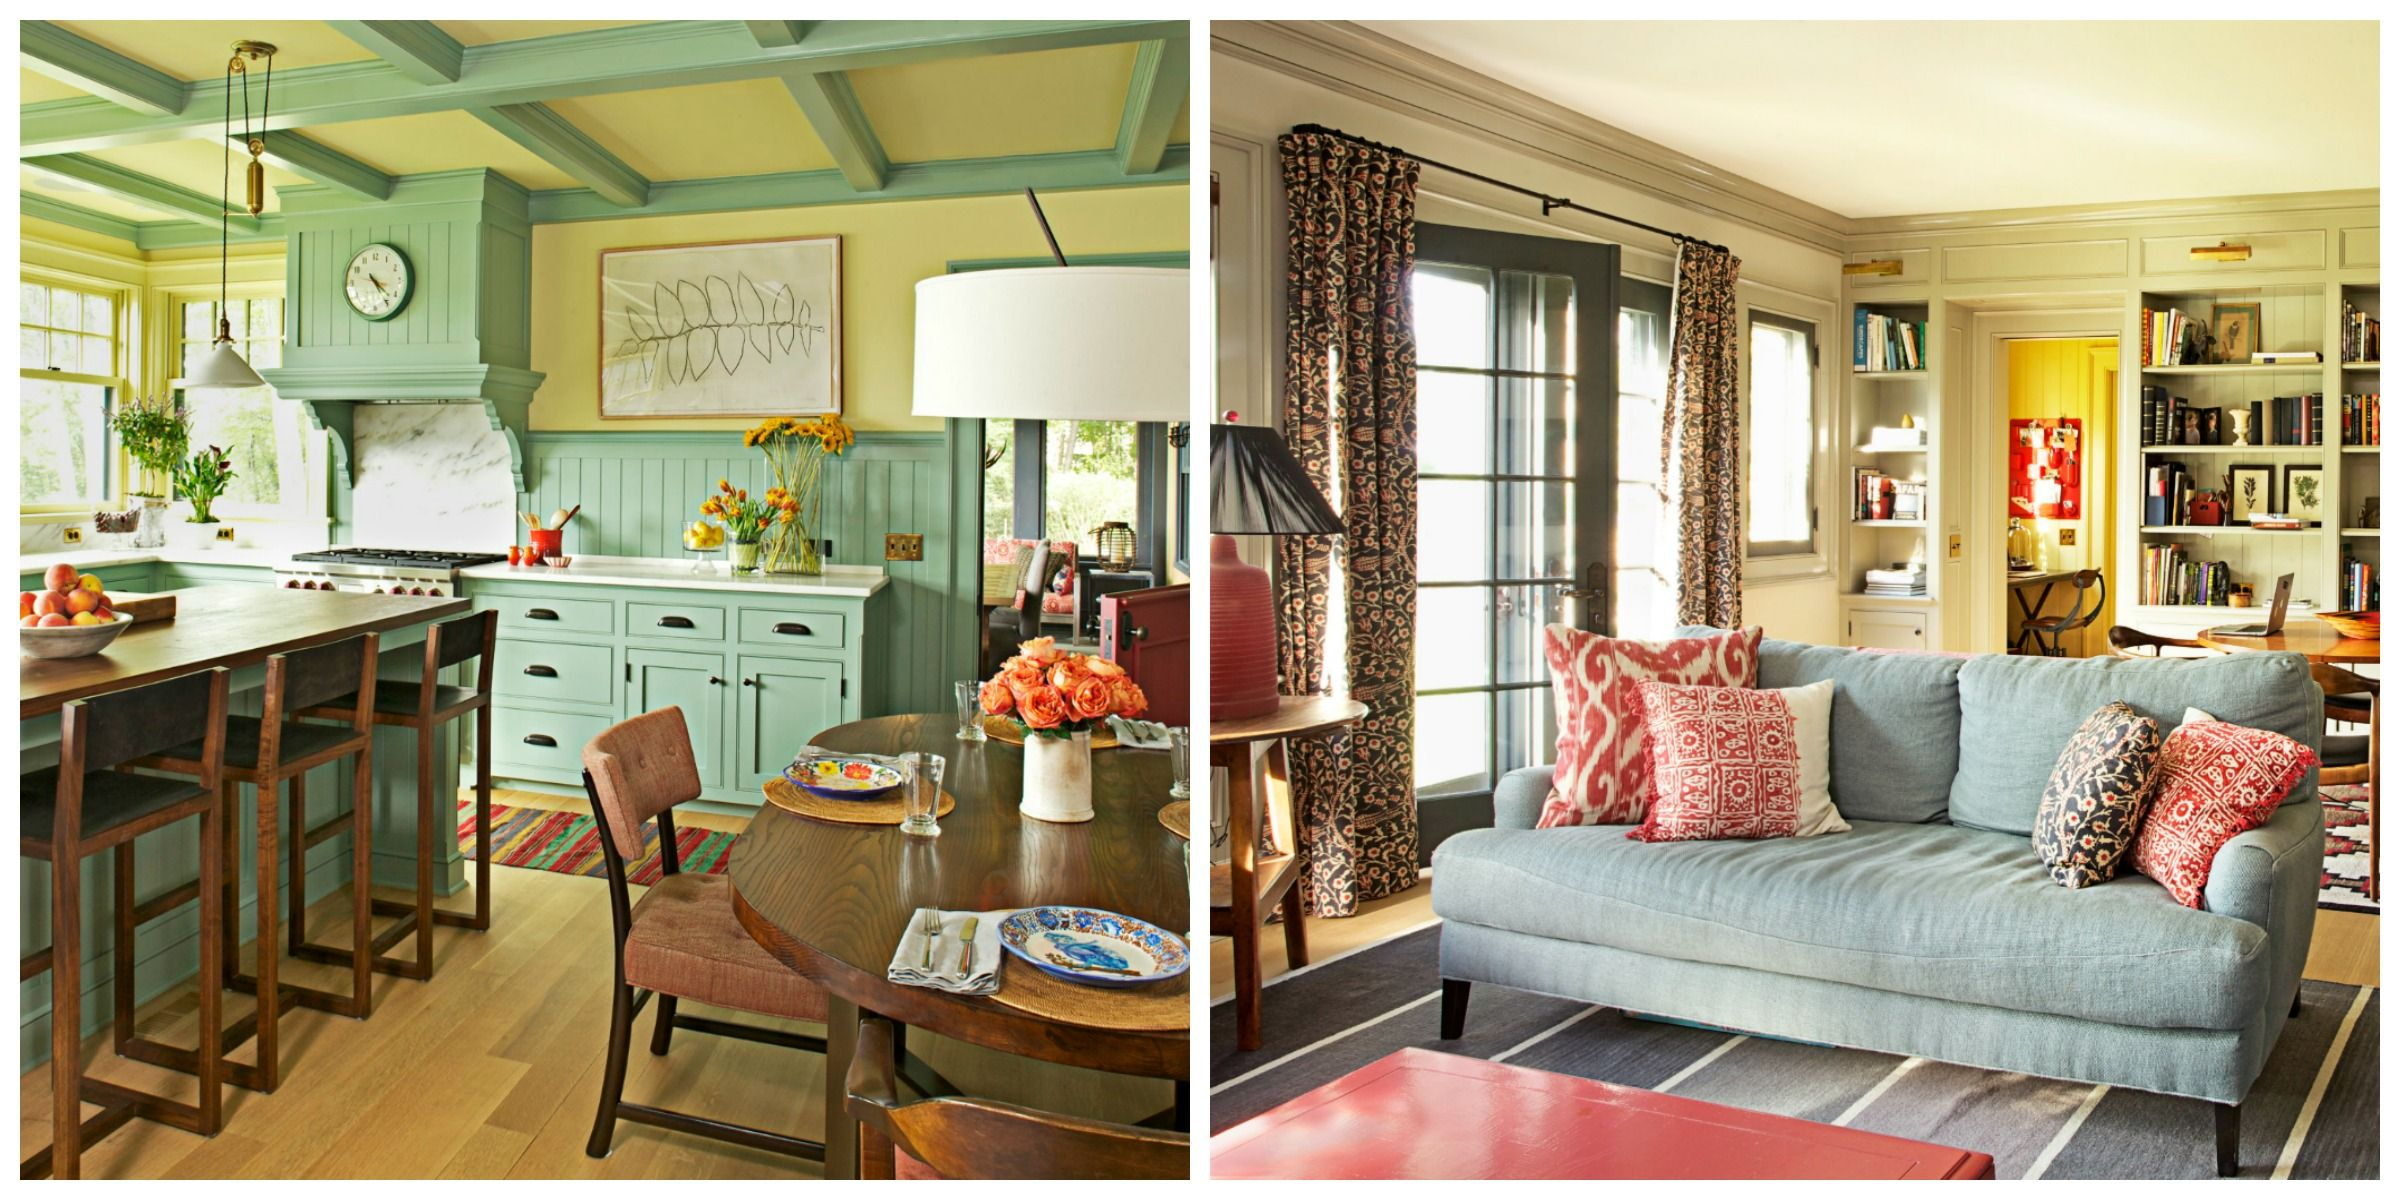 13 Decorating Shortcuts to a Cozy, Gorgeous Home